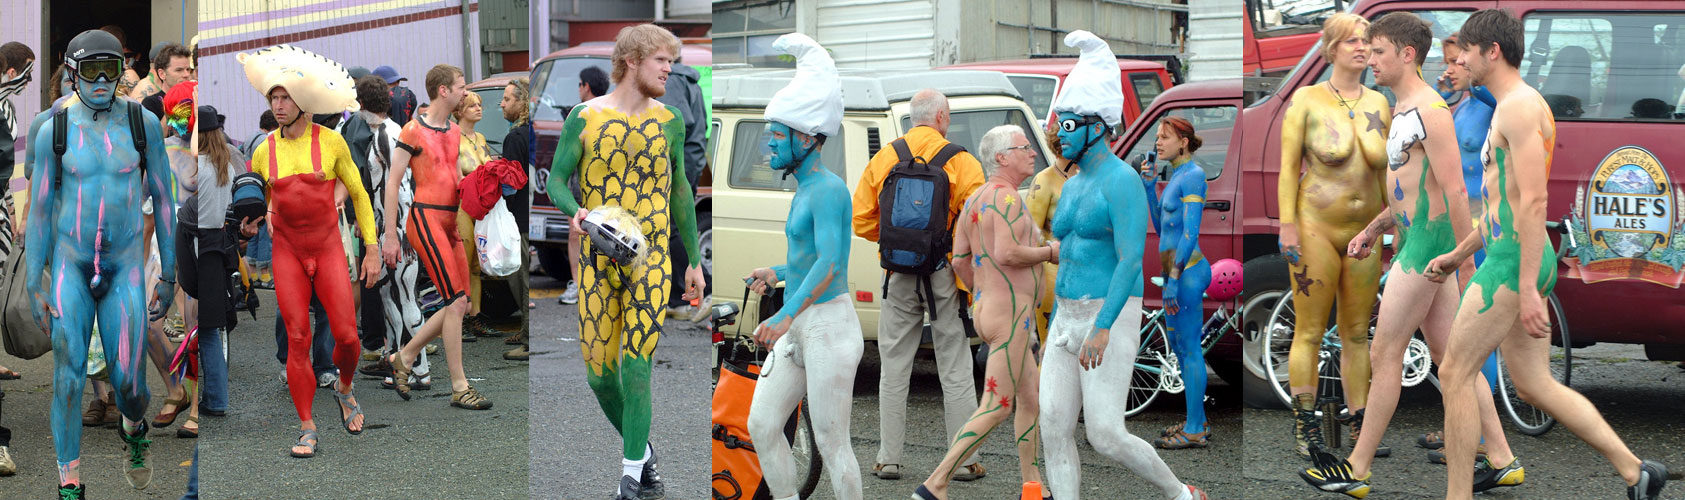 The World Naked Bike Ride and the Fremont Solstice parade.